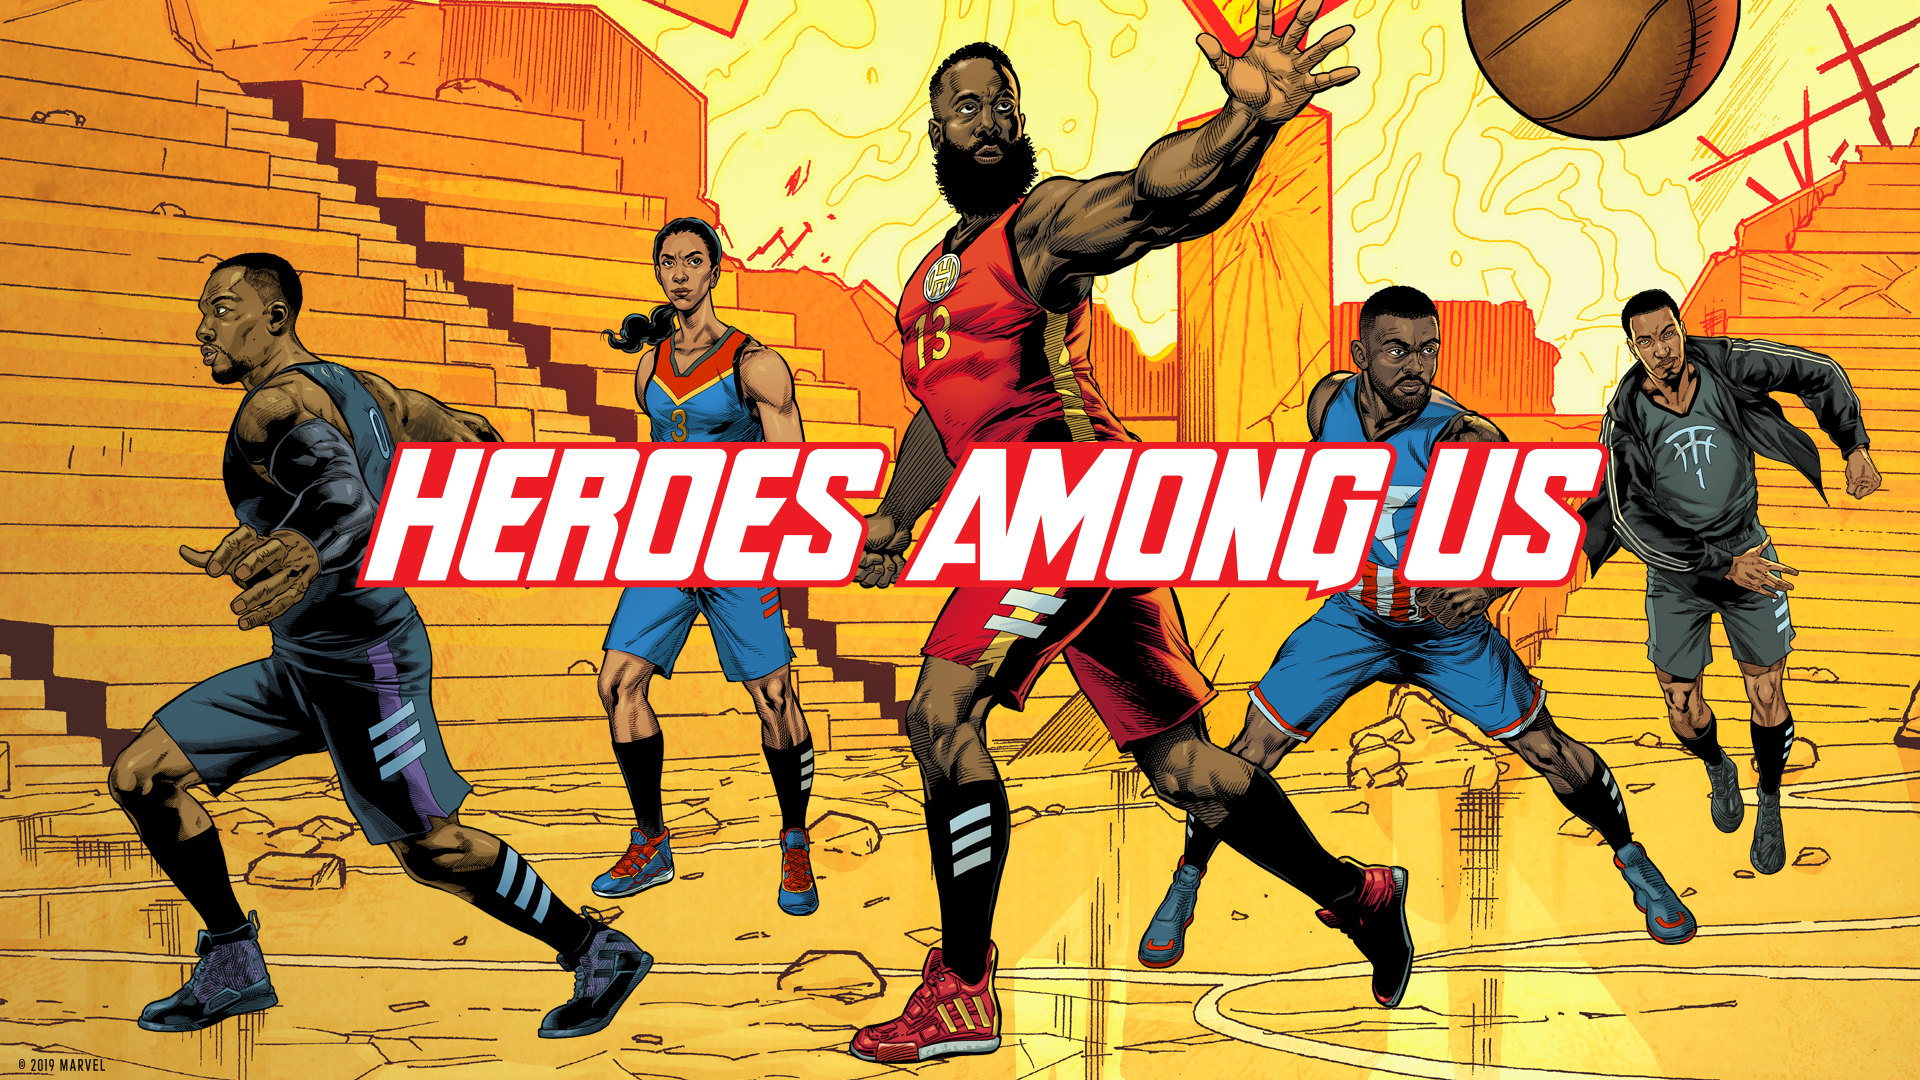 Adidas Teams Up with Marvel for 'The Avengers' Inspired